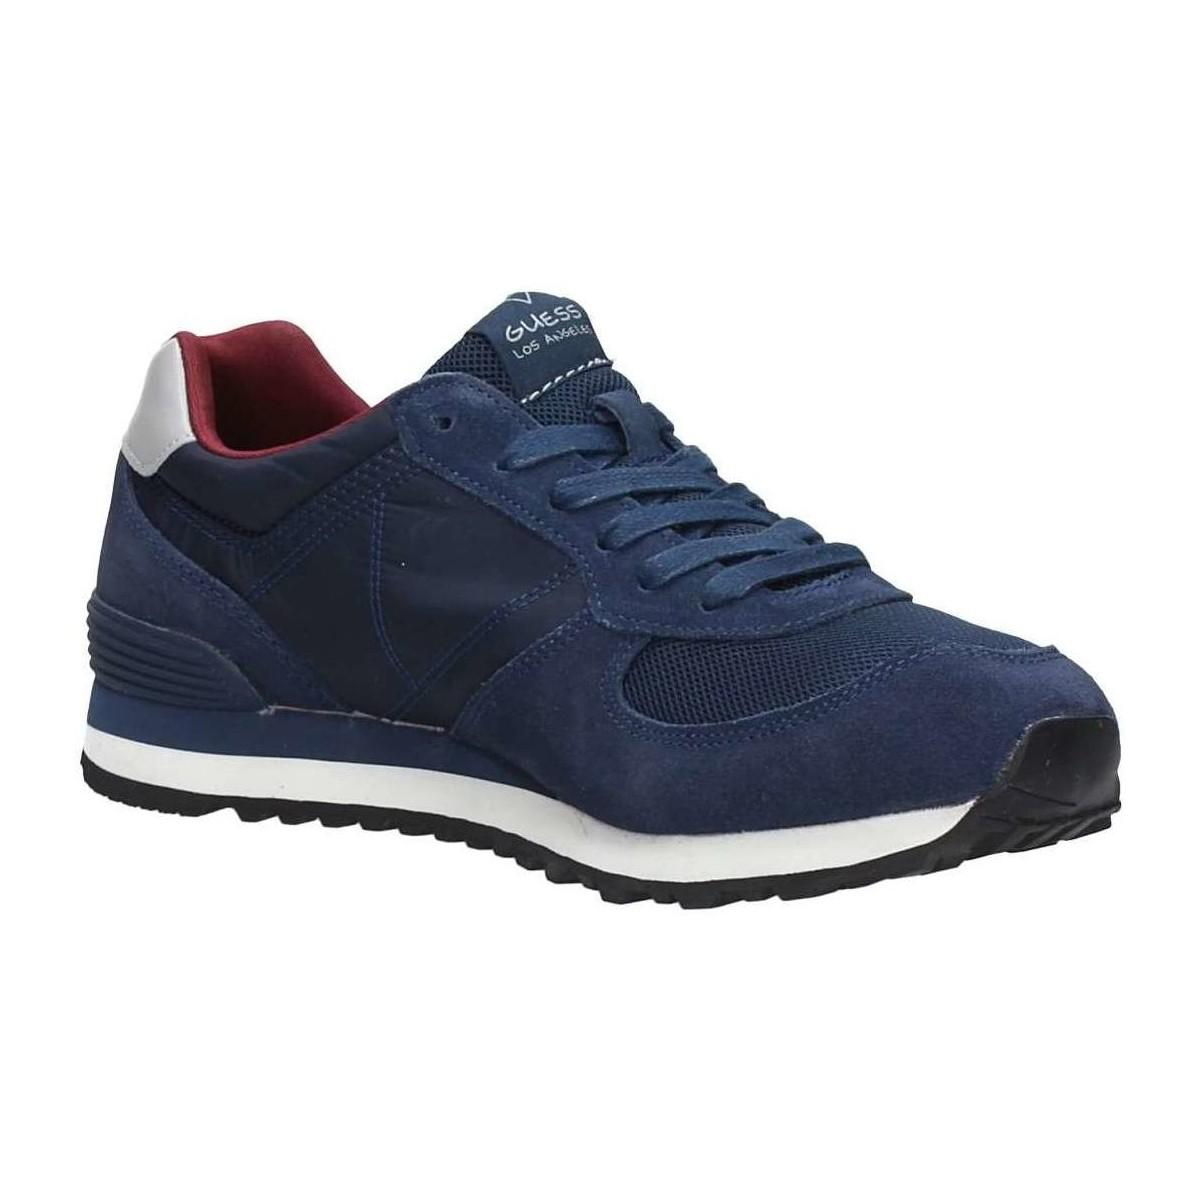 Guess Fmcha1 Fab12 Sneakers Men's Shoes (trainers) In Blue for Men